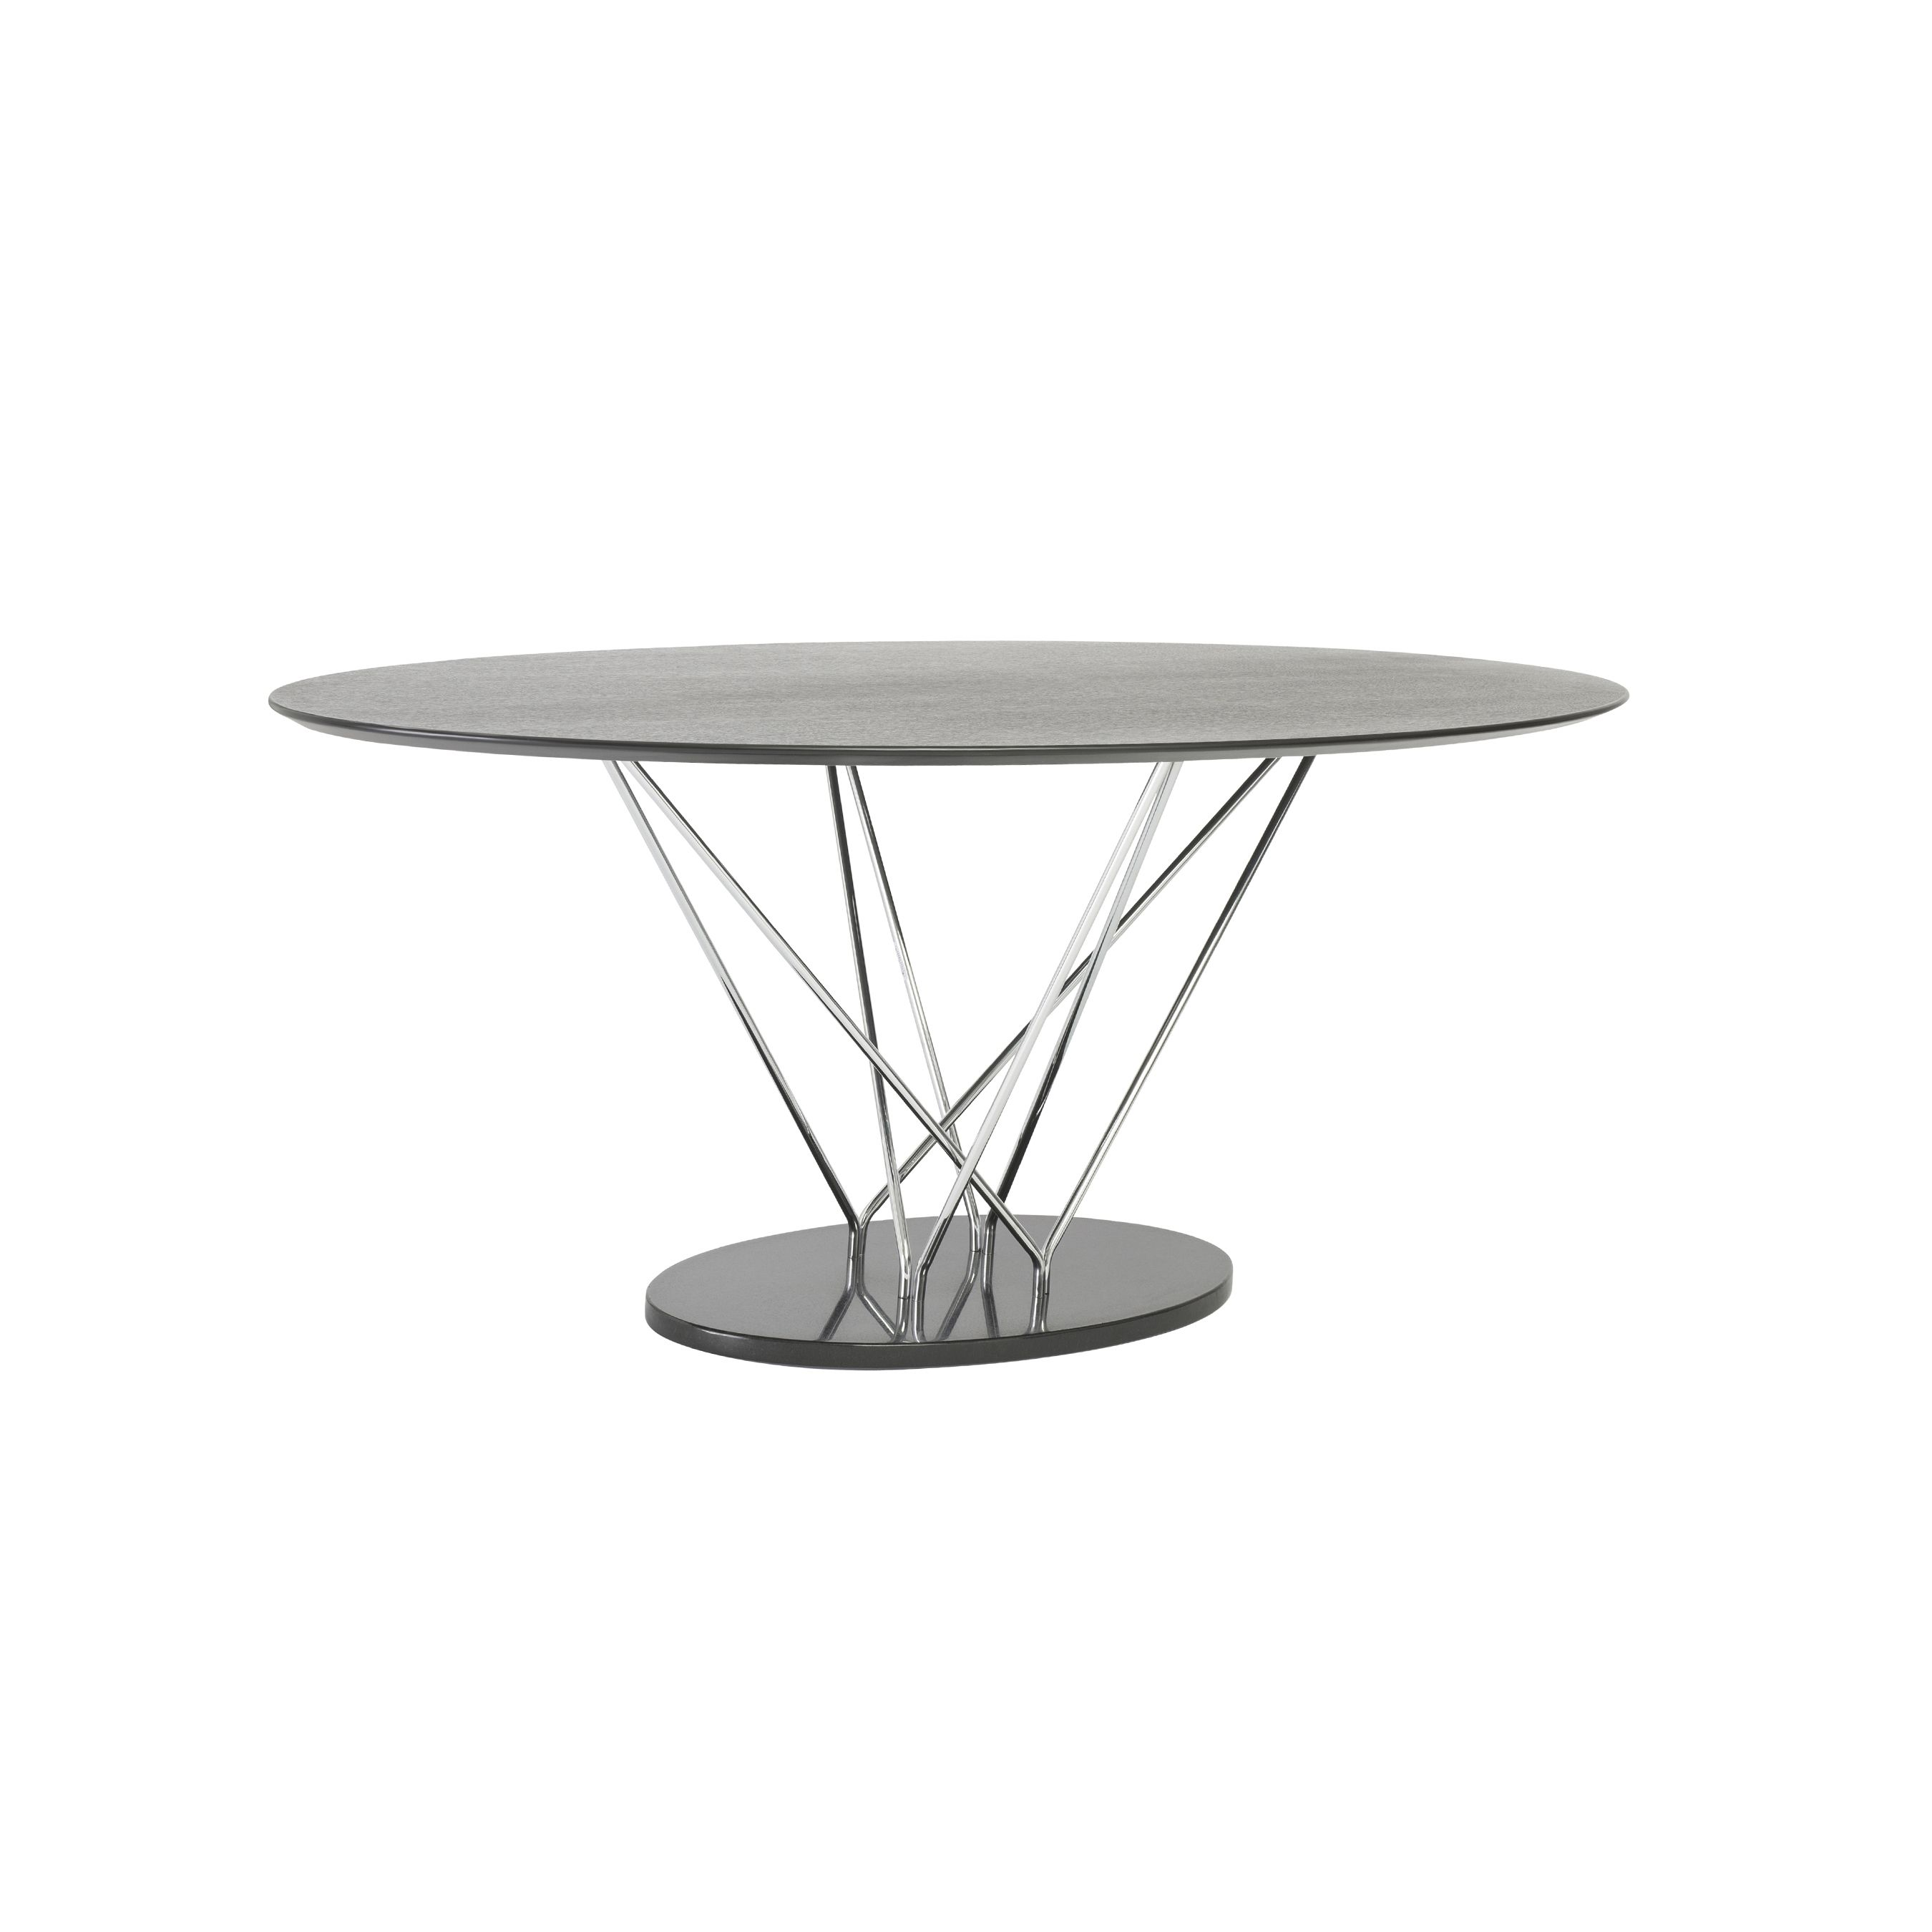 1aeb0dcf17bd6eb79f7f1c79f9c4a2f3 Top Result 50 Luxury Black and White Coffee Table Image 2017 Shdy7